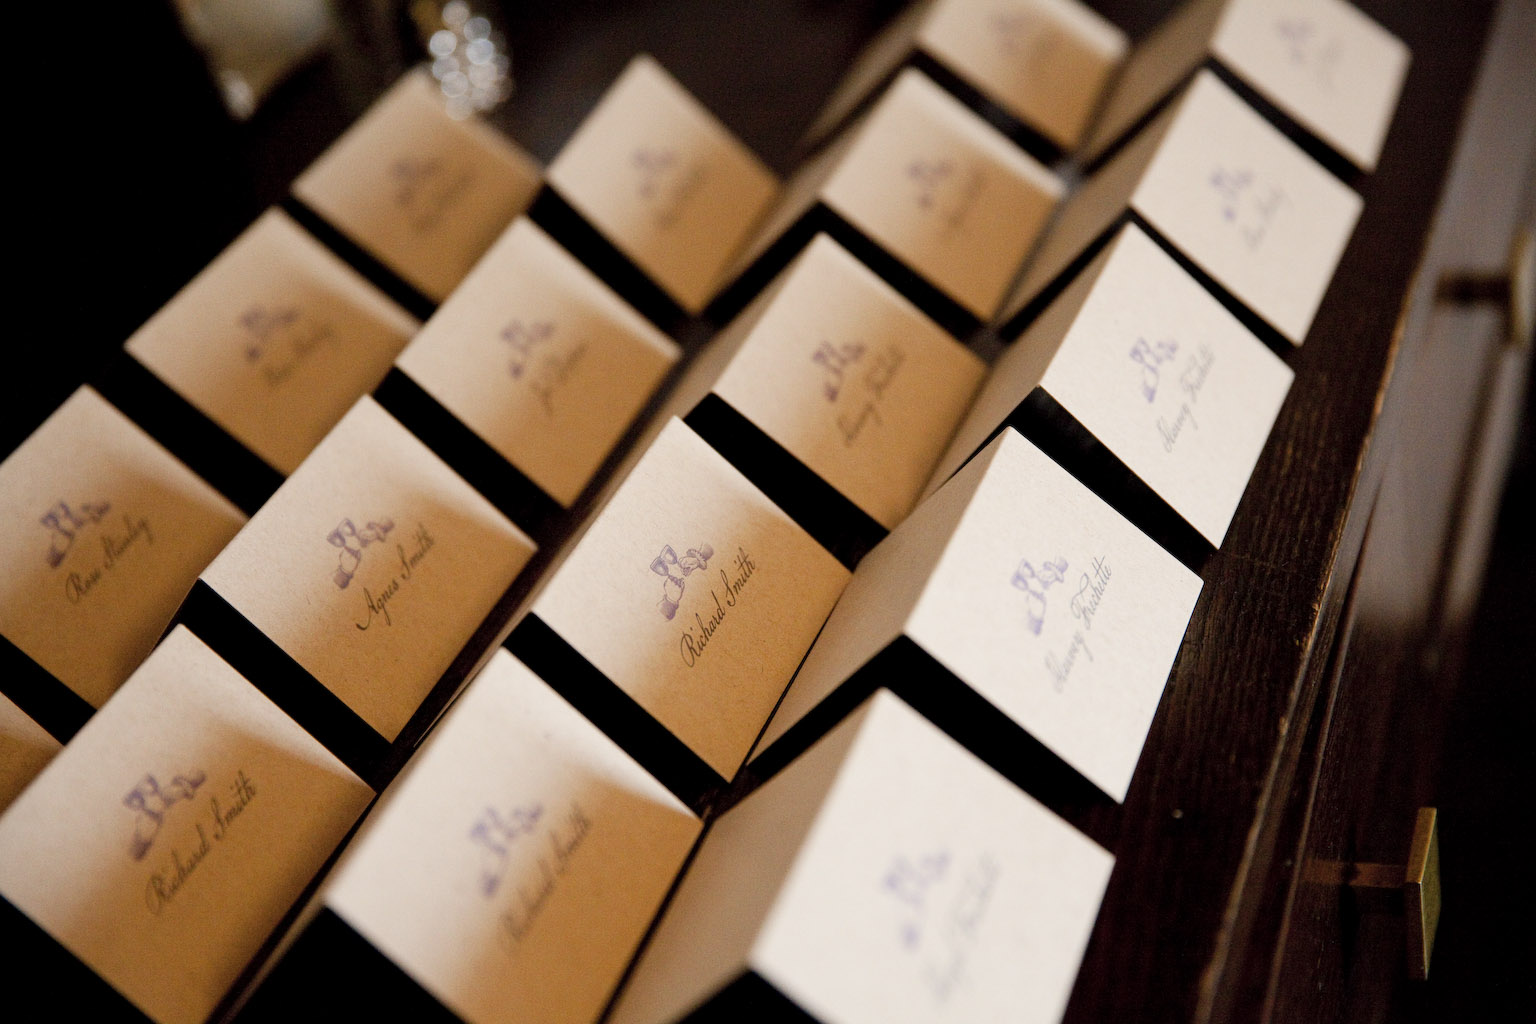 Escort Cards: The Green Building Photoshoot